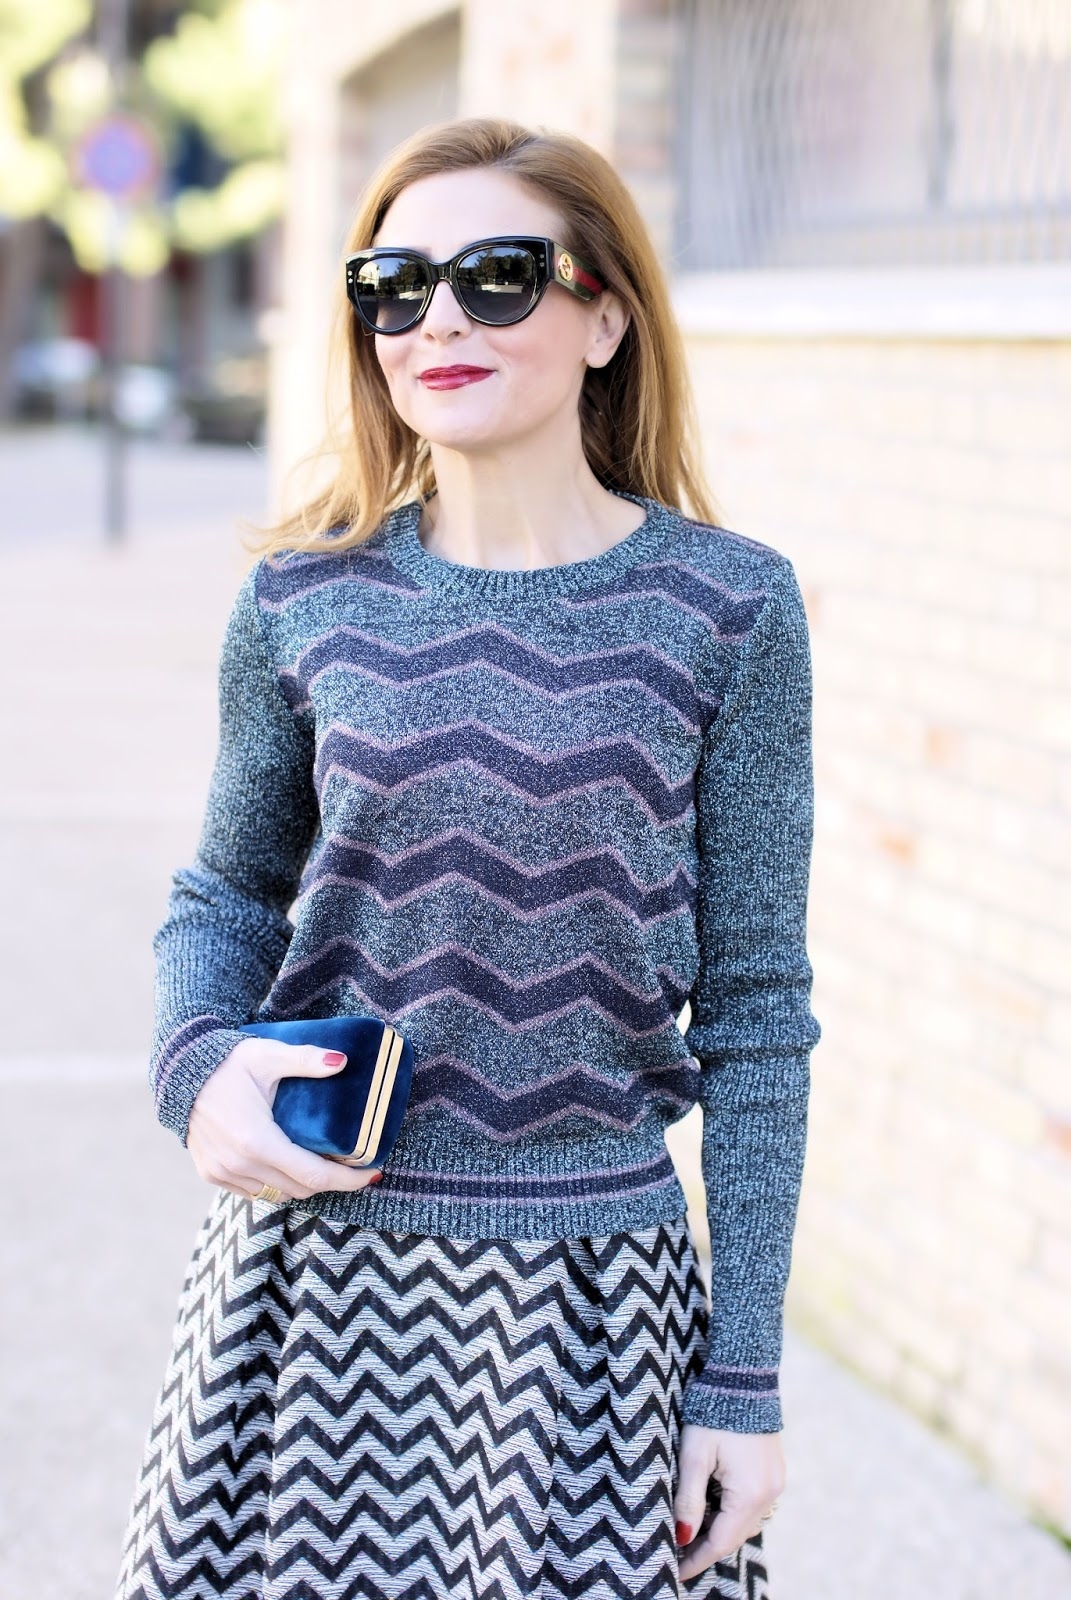 Winter holidays look: double chevron print and Gucci sunglasses on Fashion and Cookies fashion blog, fashion blogger style